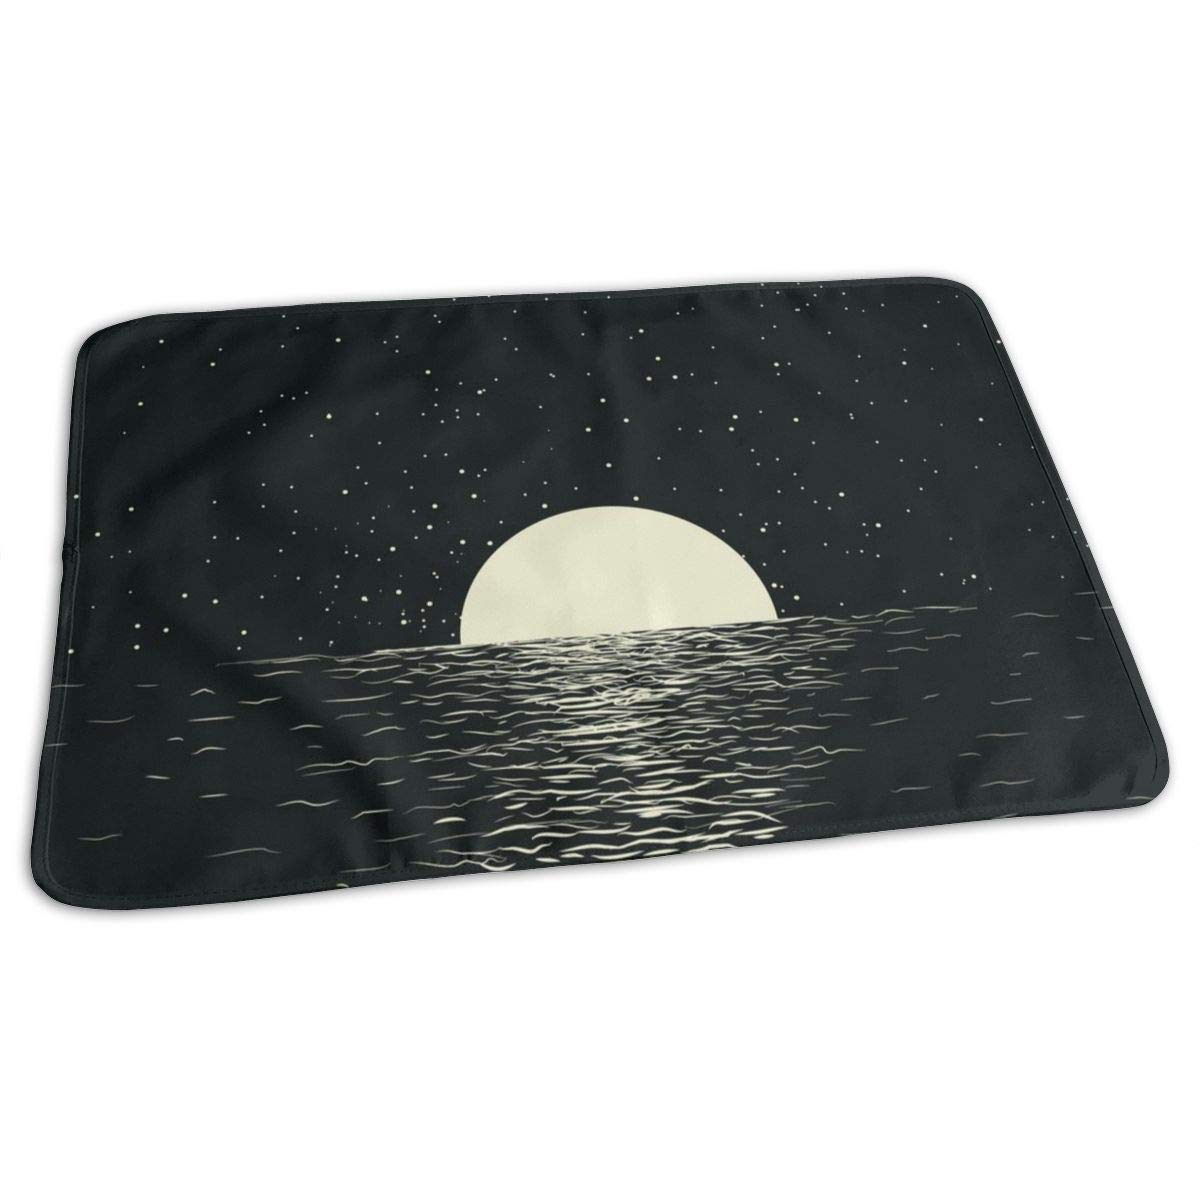 ZZguowuque Portable Changing Pad -Reusable Waterproof Baby Changing Pad(9.457.09 Inch) Seascape with Moon